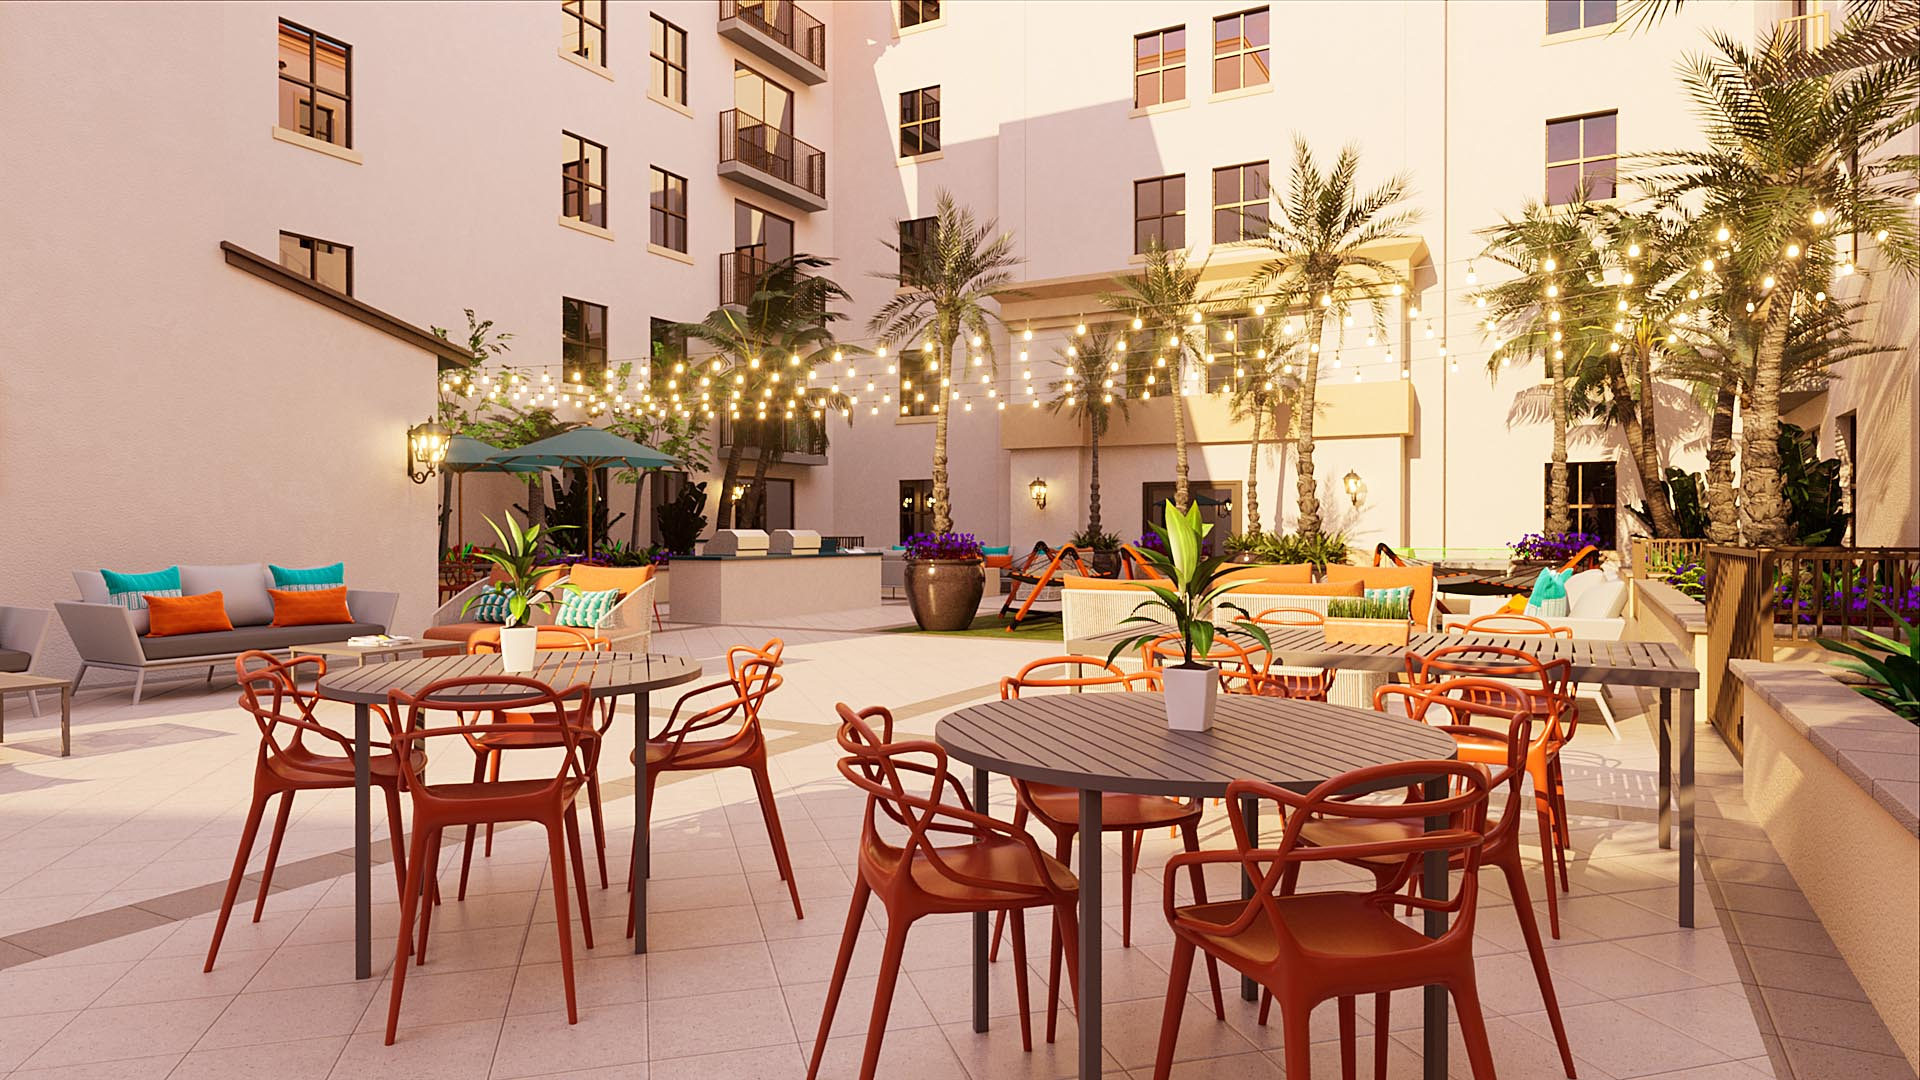 Courtyard seating area with tables during golden hour